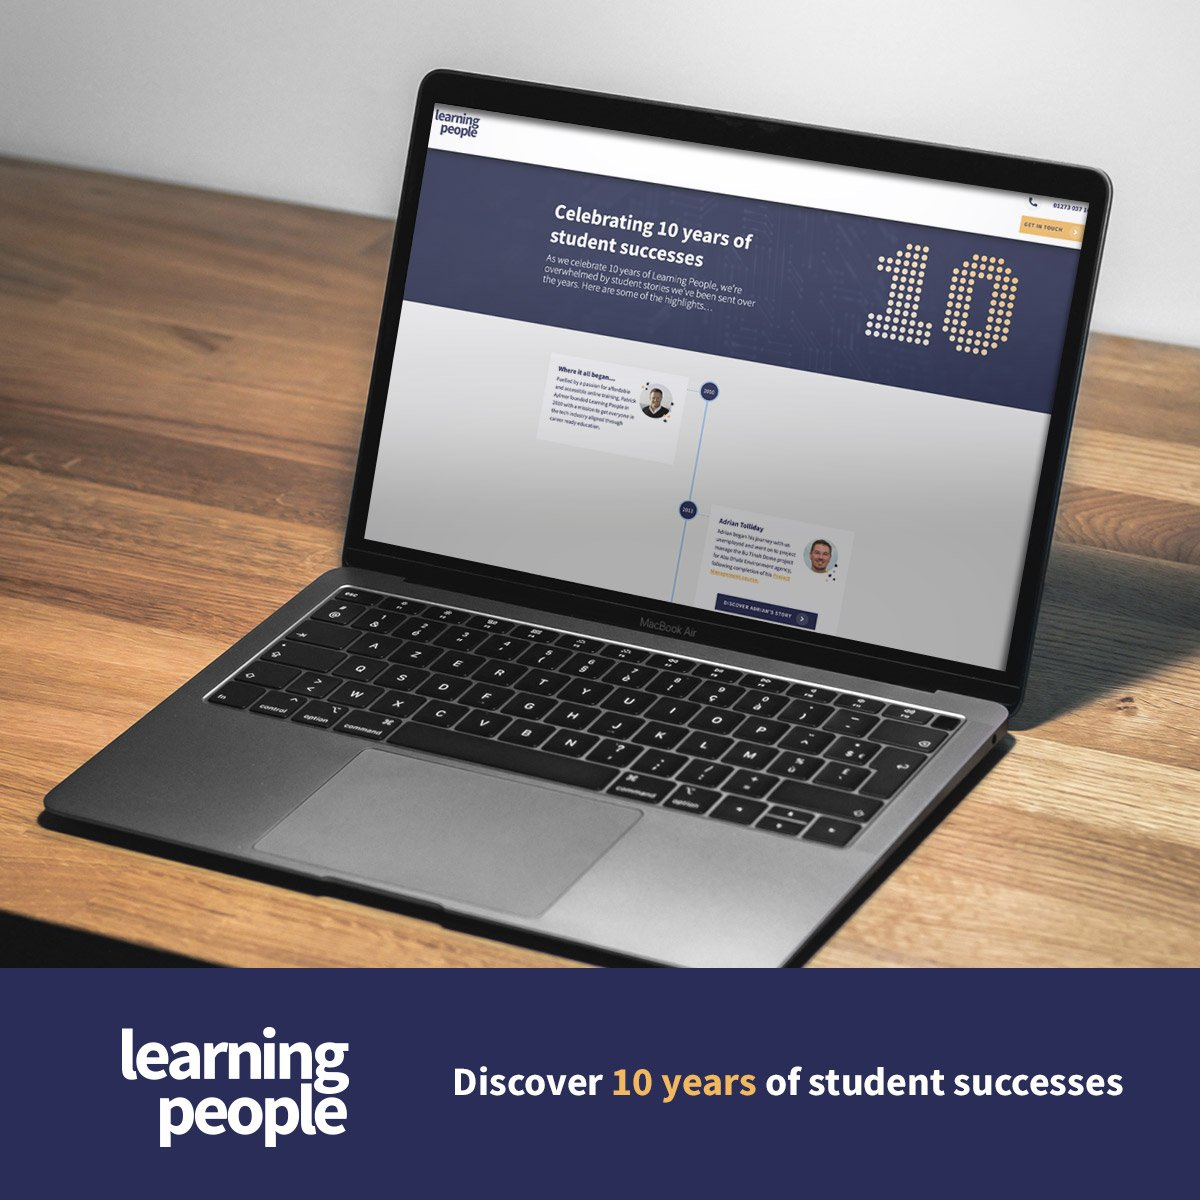 Discover 10 years of student success